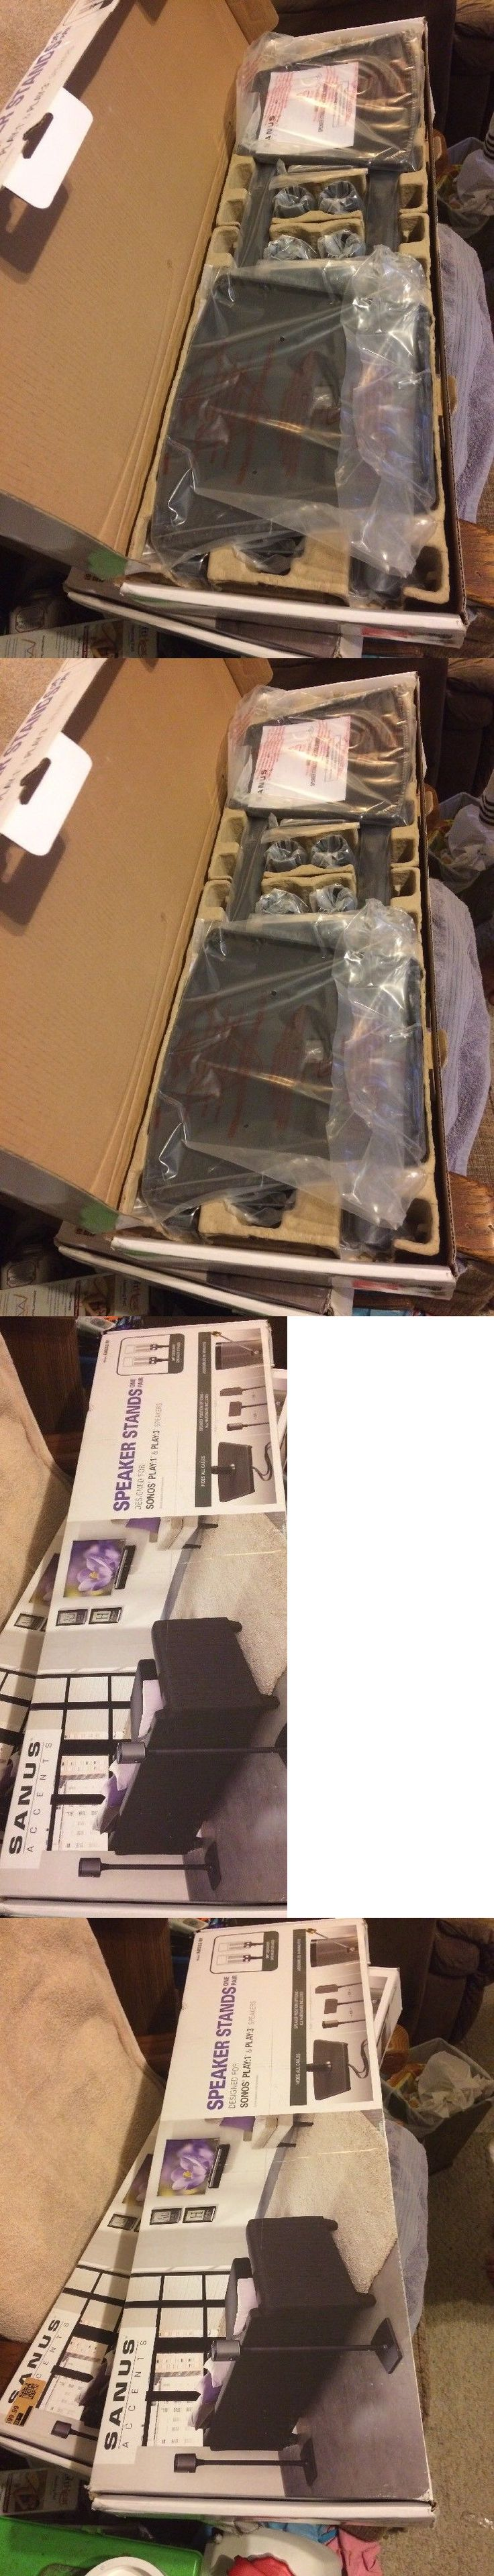 Speaker Mounts and Stands: Pair Of 2 Sanus 34 Speaker Stands For Sonos Play 1 And Play 3 Awss2-B1 New Sealed -> BUY IT NOW ONLY: $79 on eBay!